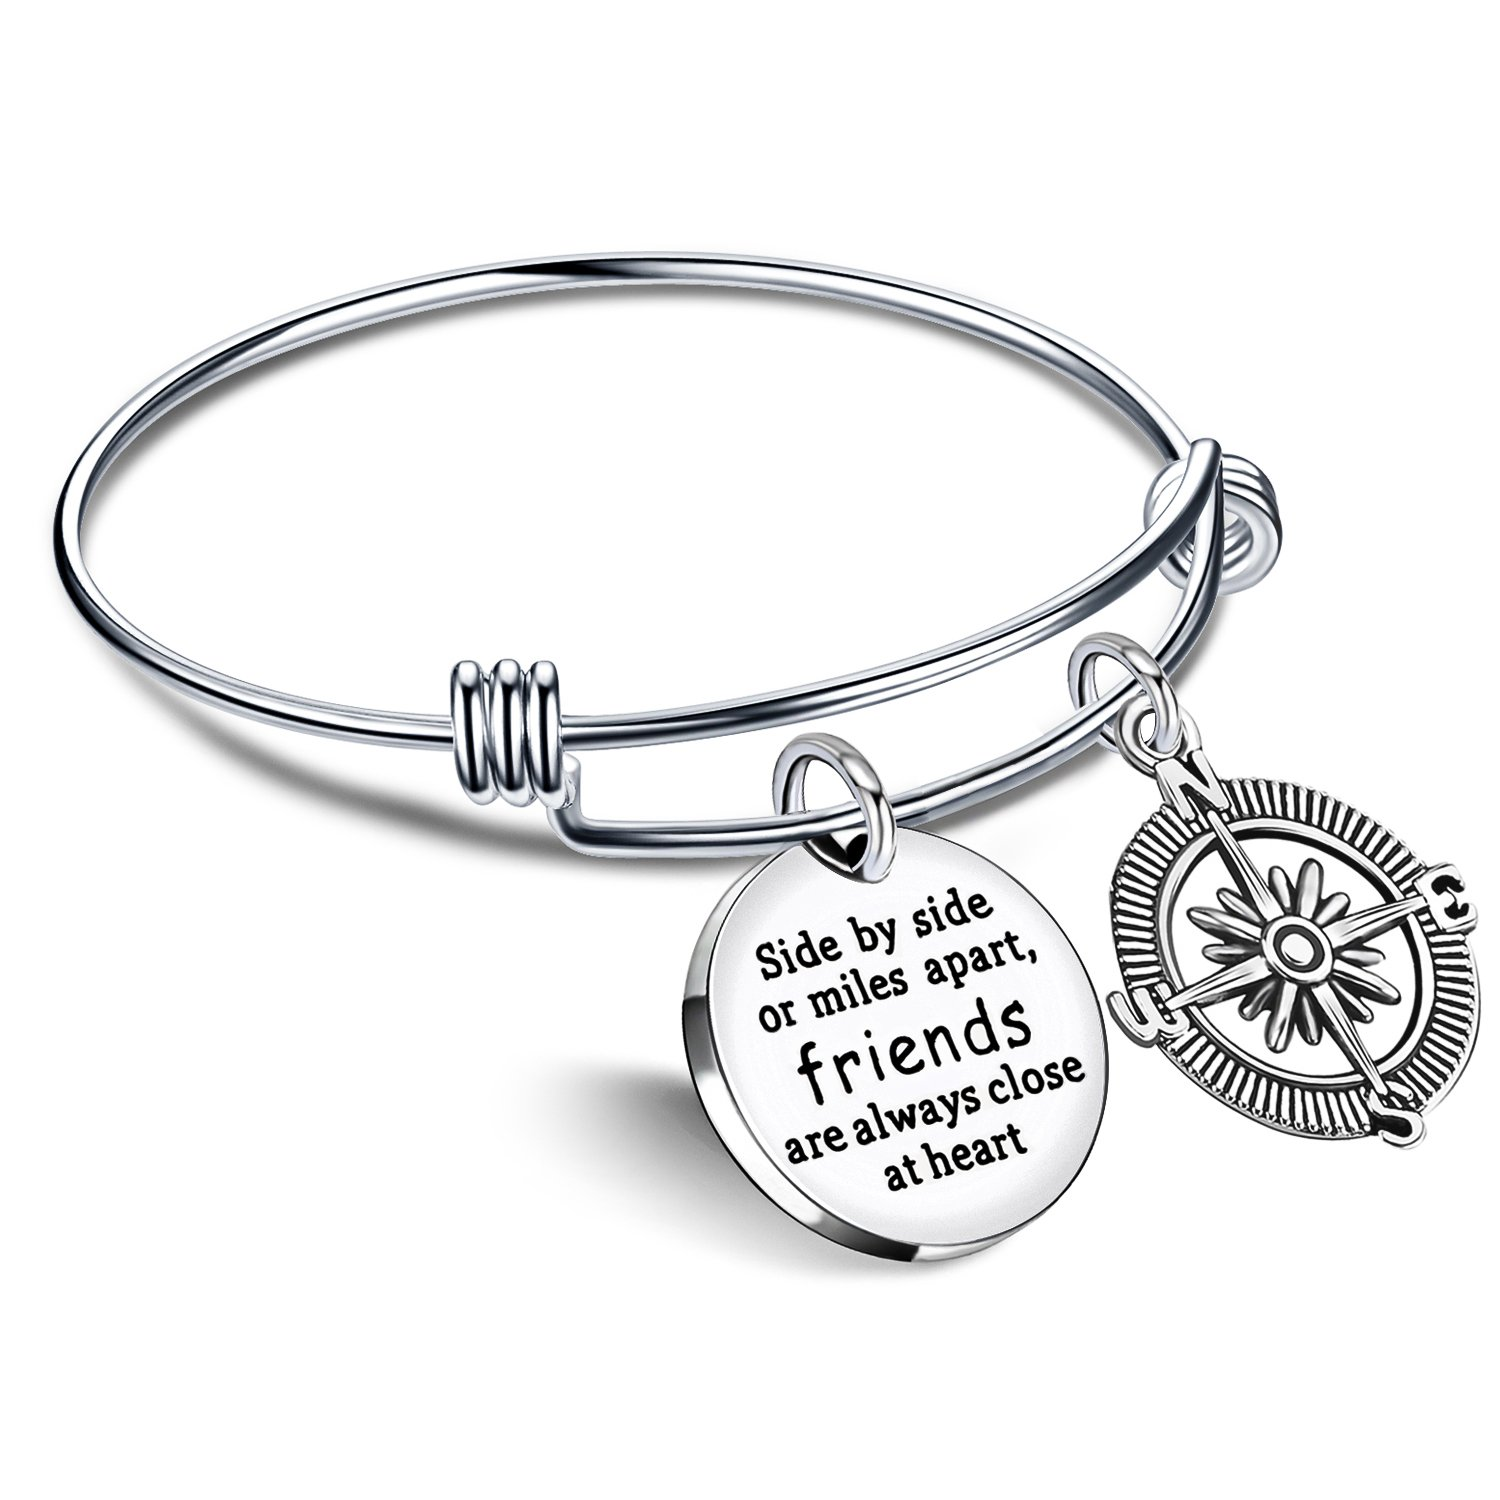 Best Friend Bracelet Friends are always close at heart BFF Bangle Compass Long Distance Friendship Gifts lauhonmin AB056-CA